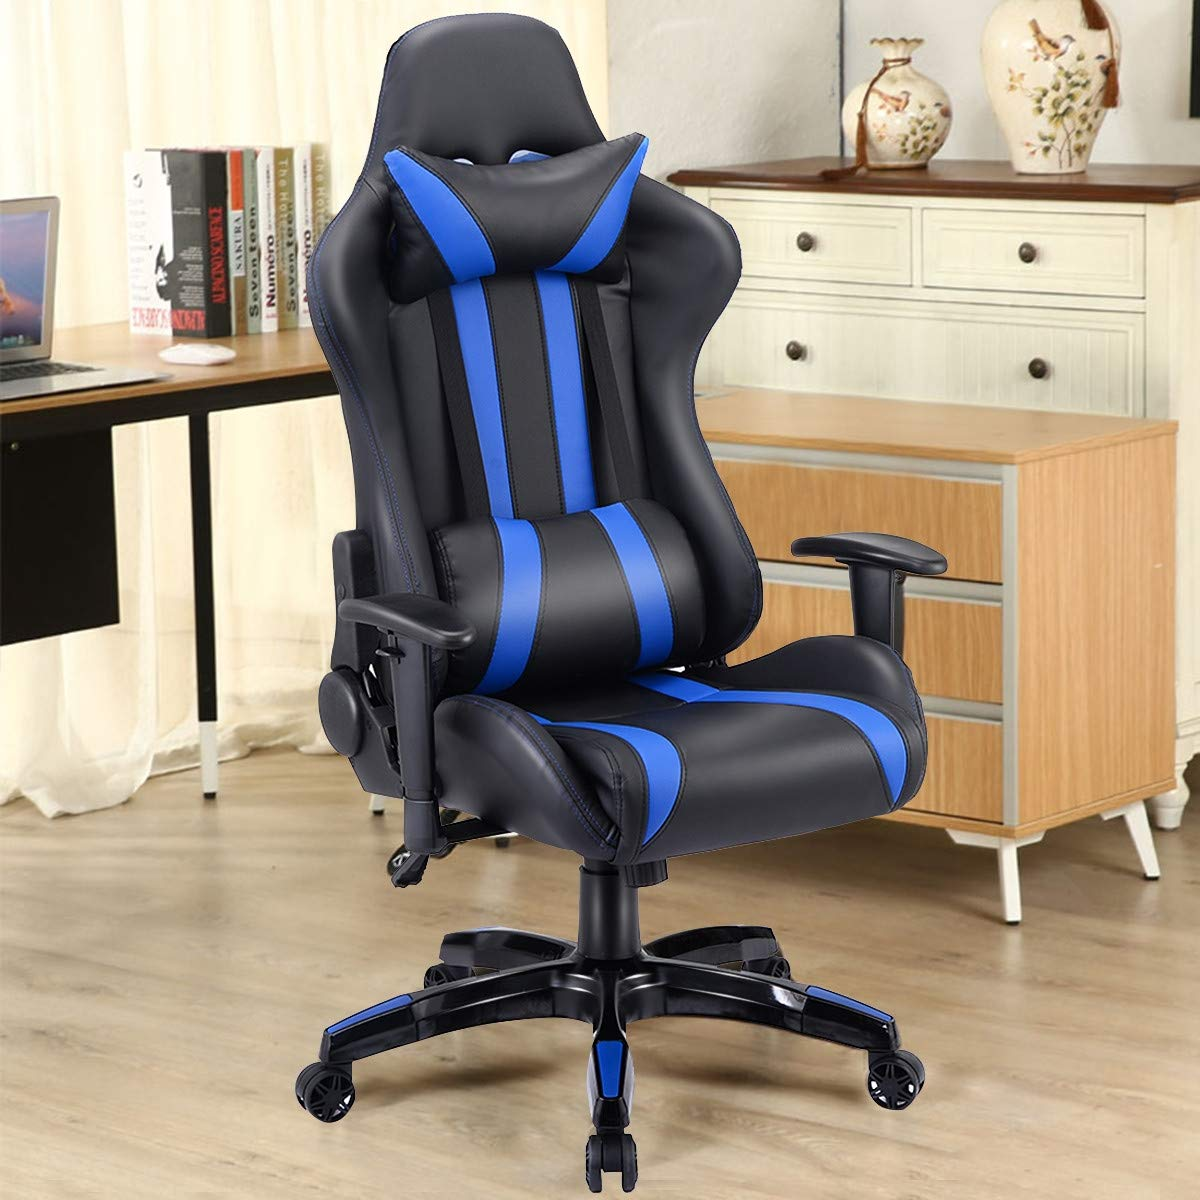 Modern Style Executive High-Back Racing Gaming Chair, Ergonomic, and Adjustable Back, Adjustable Armrest and Seat Height,360-Degree Swivel, PU Leather, Fade-Resistant and Easy to Clean Blue by Caraya